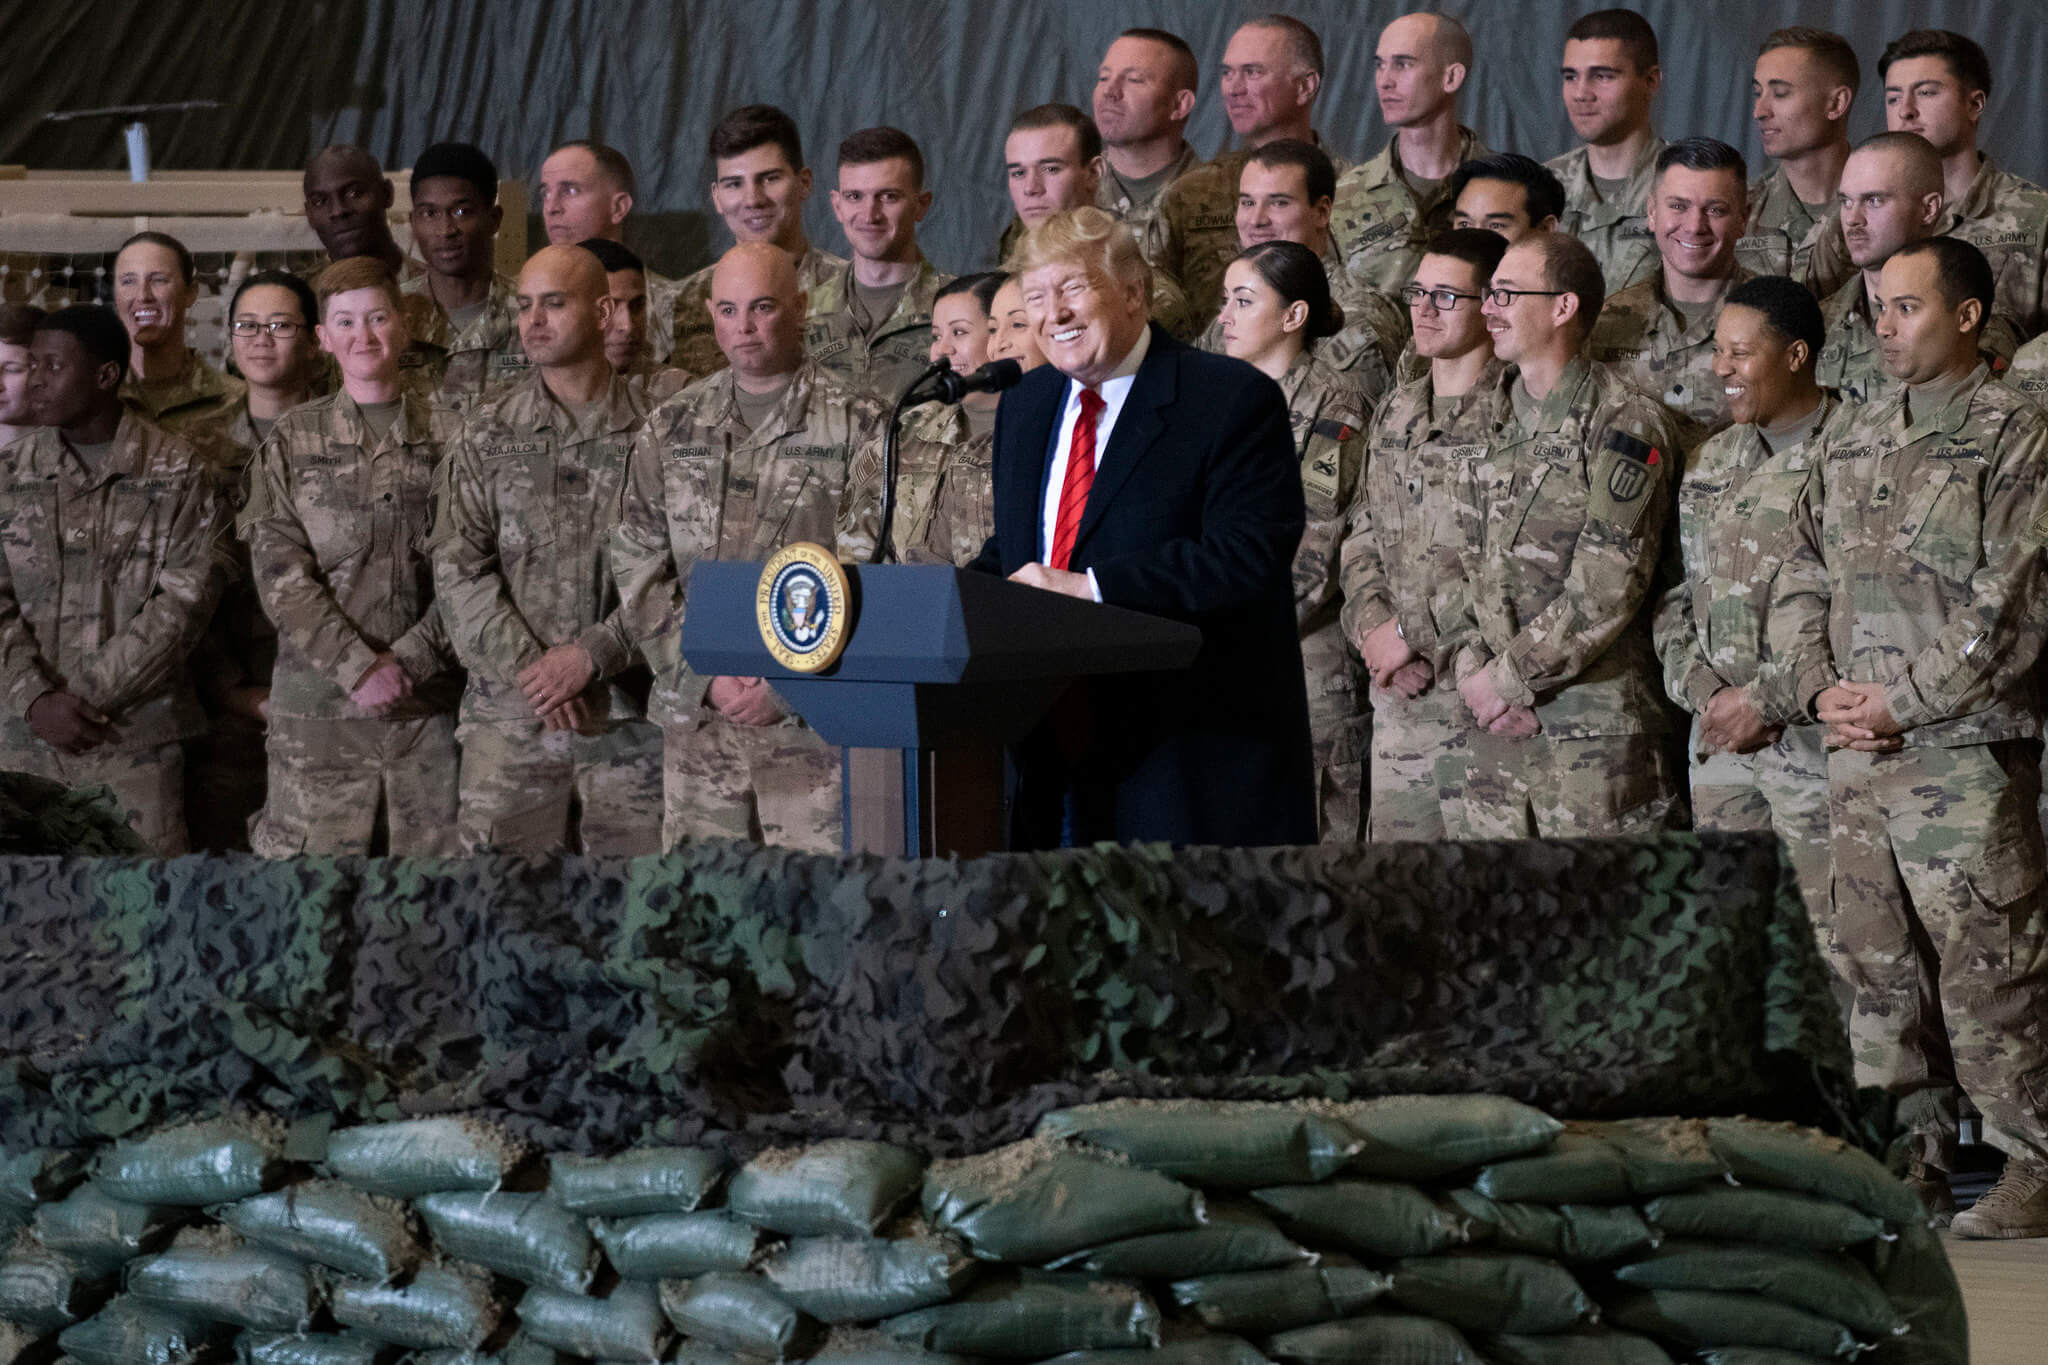 Klijn-President of the United States Donald J. Trump meet with service members at Bagram Airfield in Afghanistan in November 2019. Chairman of the Joint Chiefs of Staff